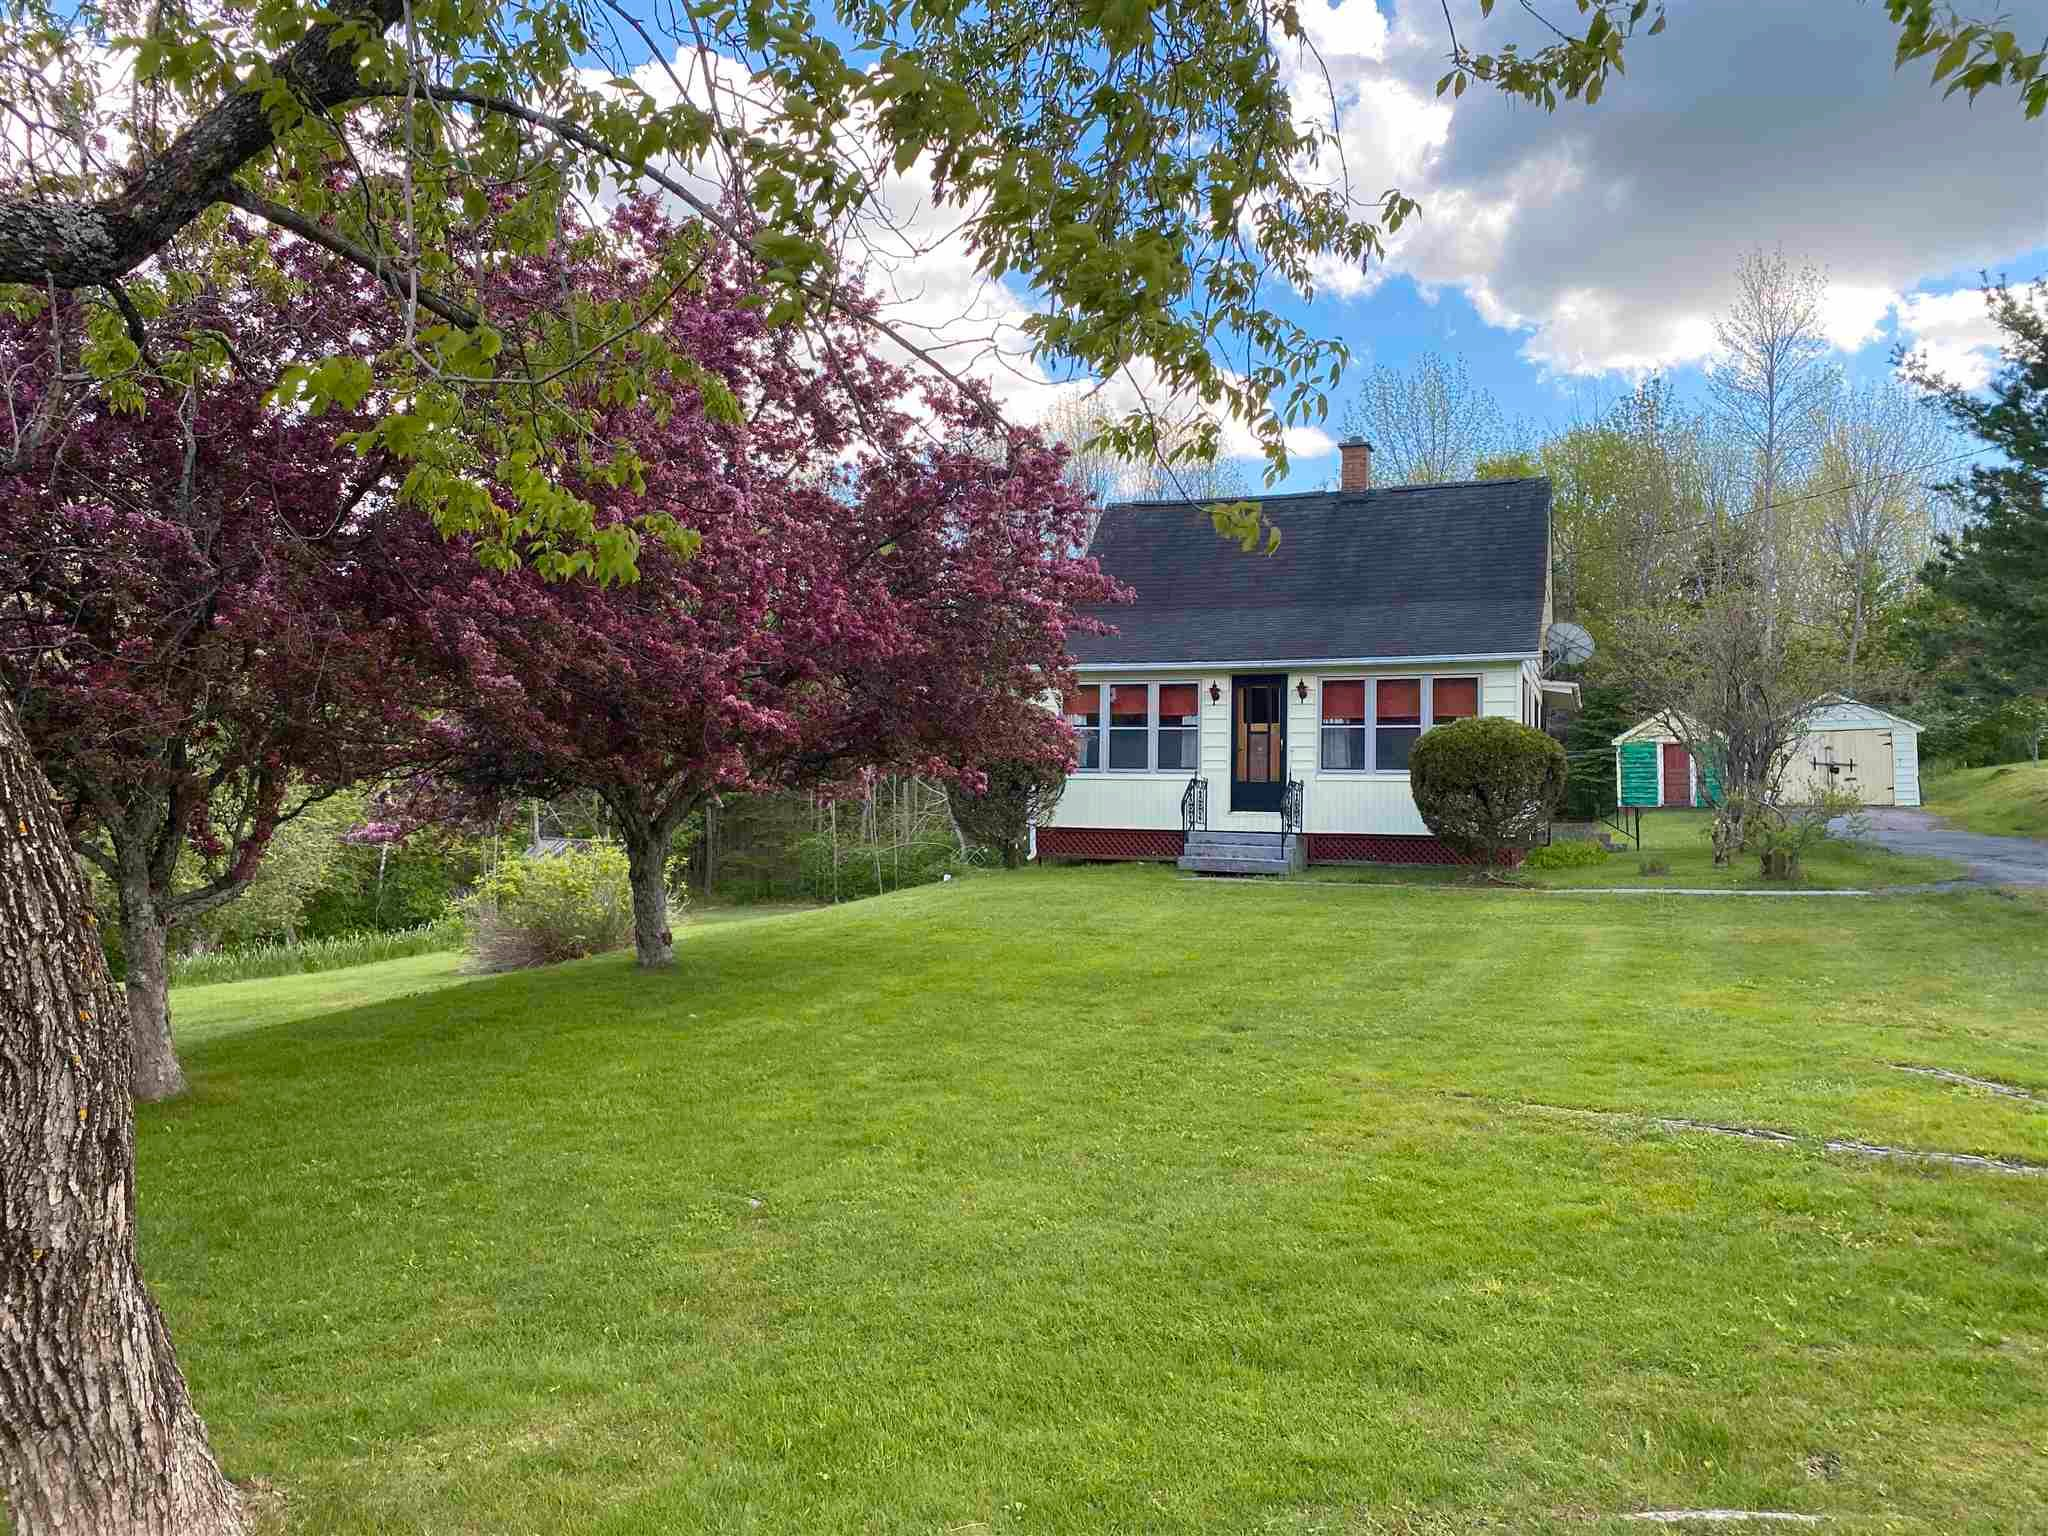 Main Photo: 9249 Sherbrooke Road in Greenwood: 108-Rural Pictou County Residential for sale (Northern Region)  : MLS®# 202114264